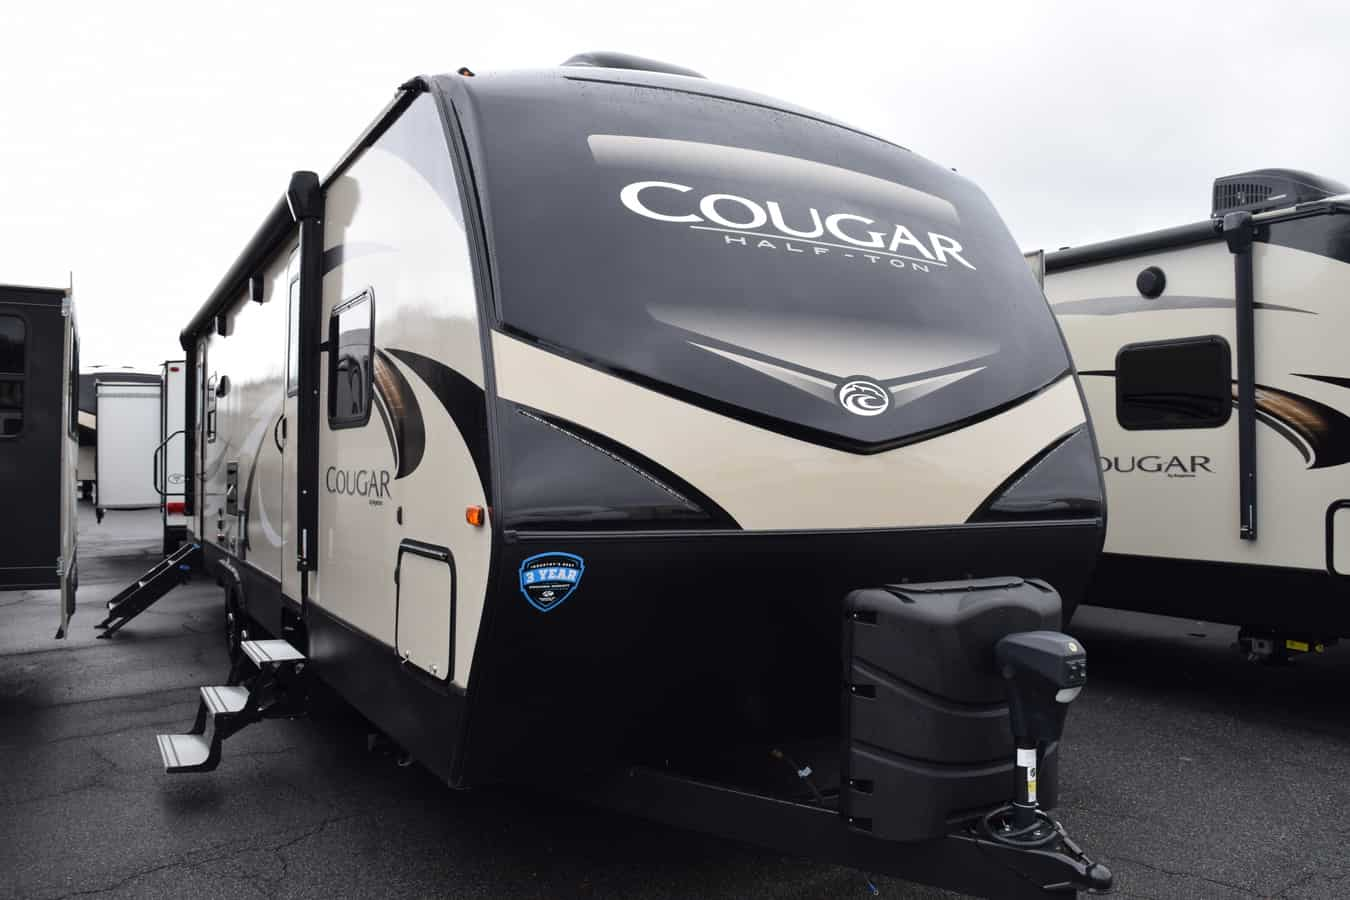 NEW 2019 Keystone rv Cougar half-ton 29RLD - Three Way Campers